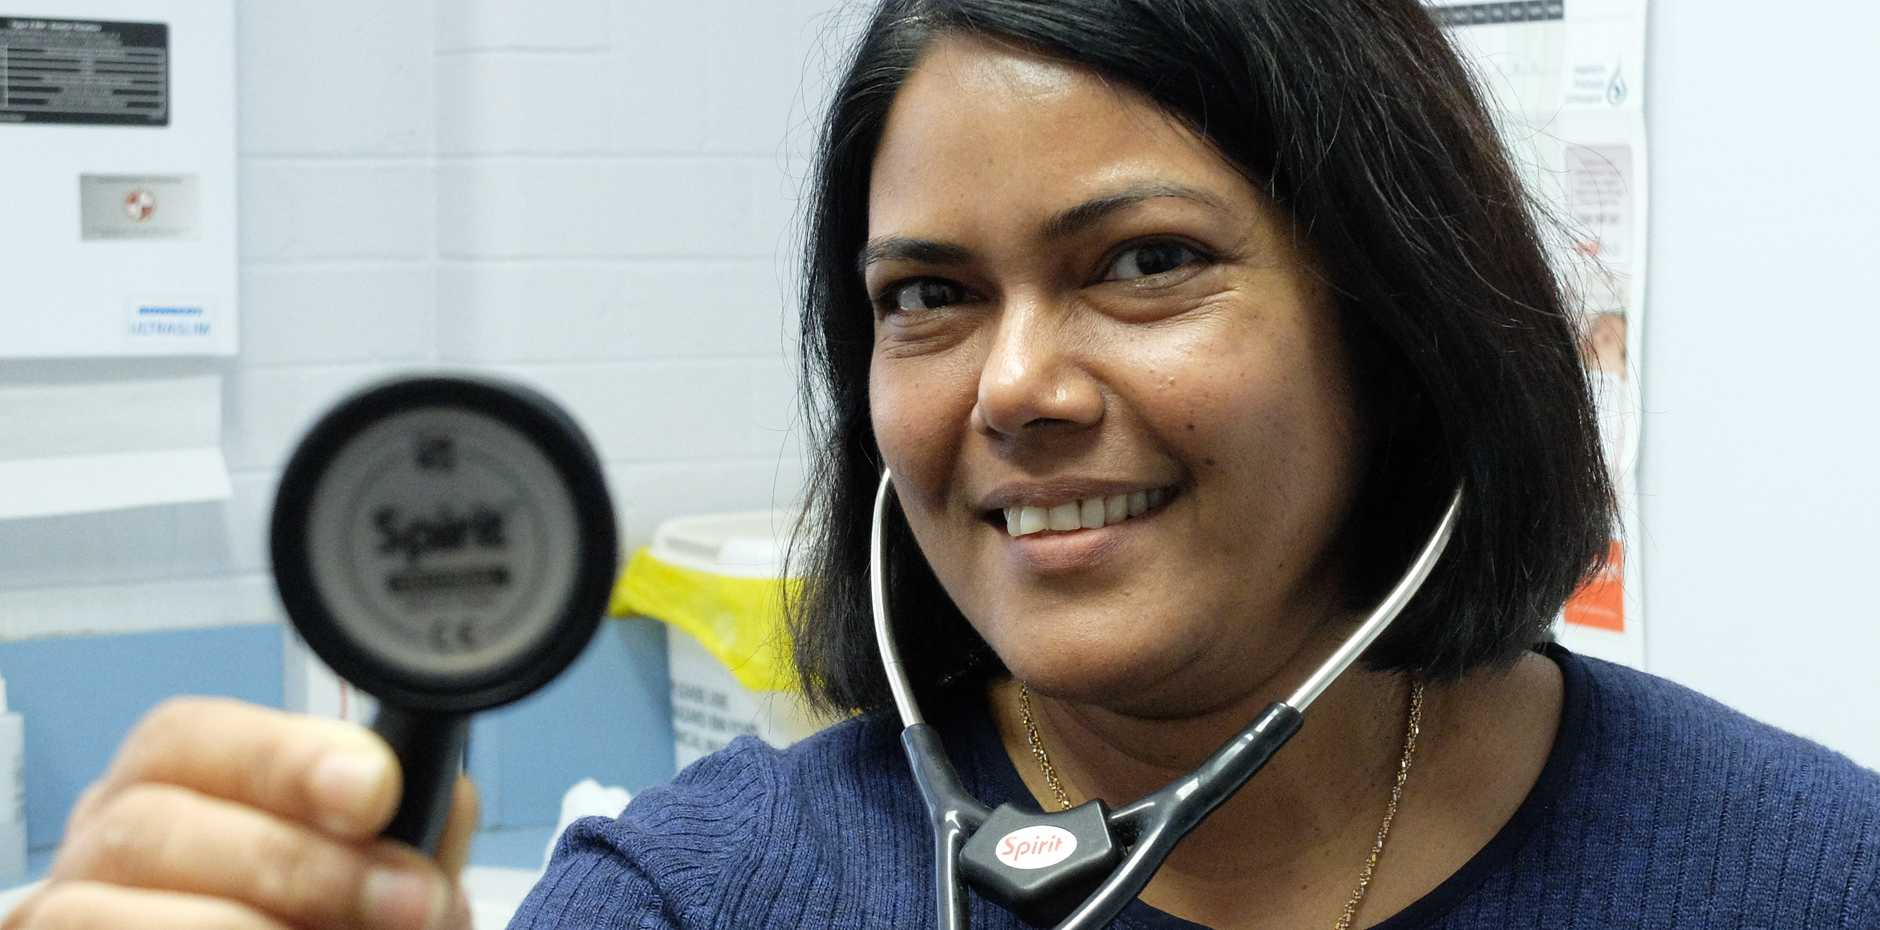 KEEP WARM: Dr Tripti Hazra encourages Toowoomba residents to maintain a healthy lifestyle this winter to prevent the common cold.